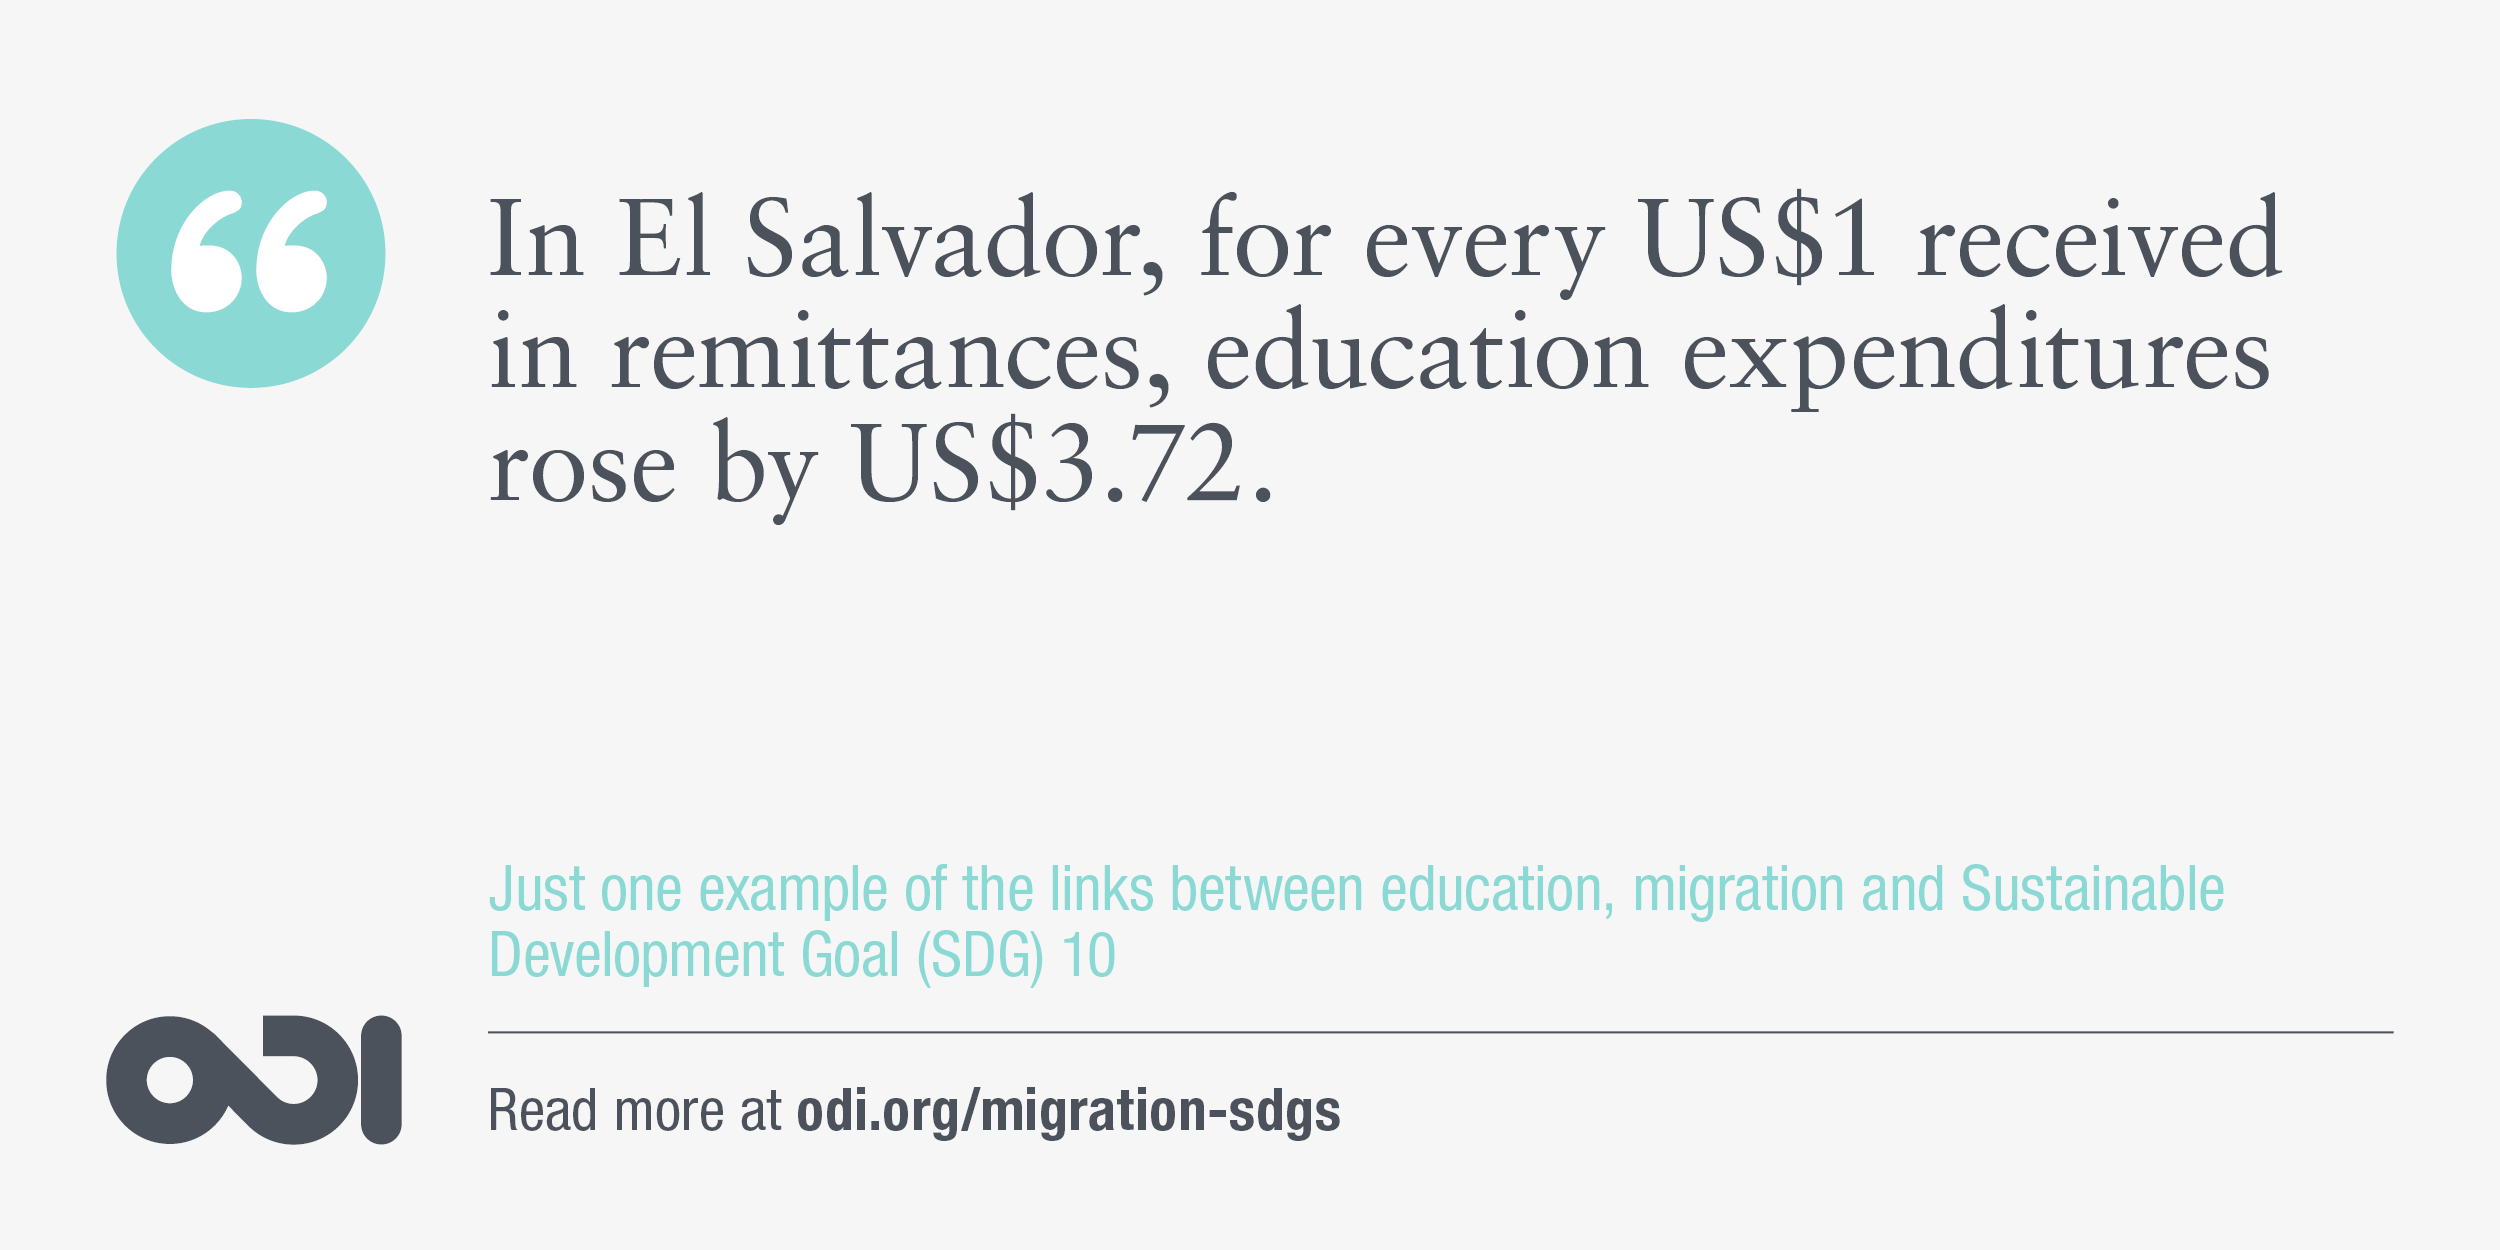 The links between education, migration and SDG 10.